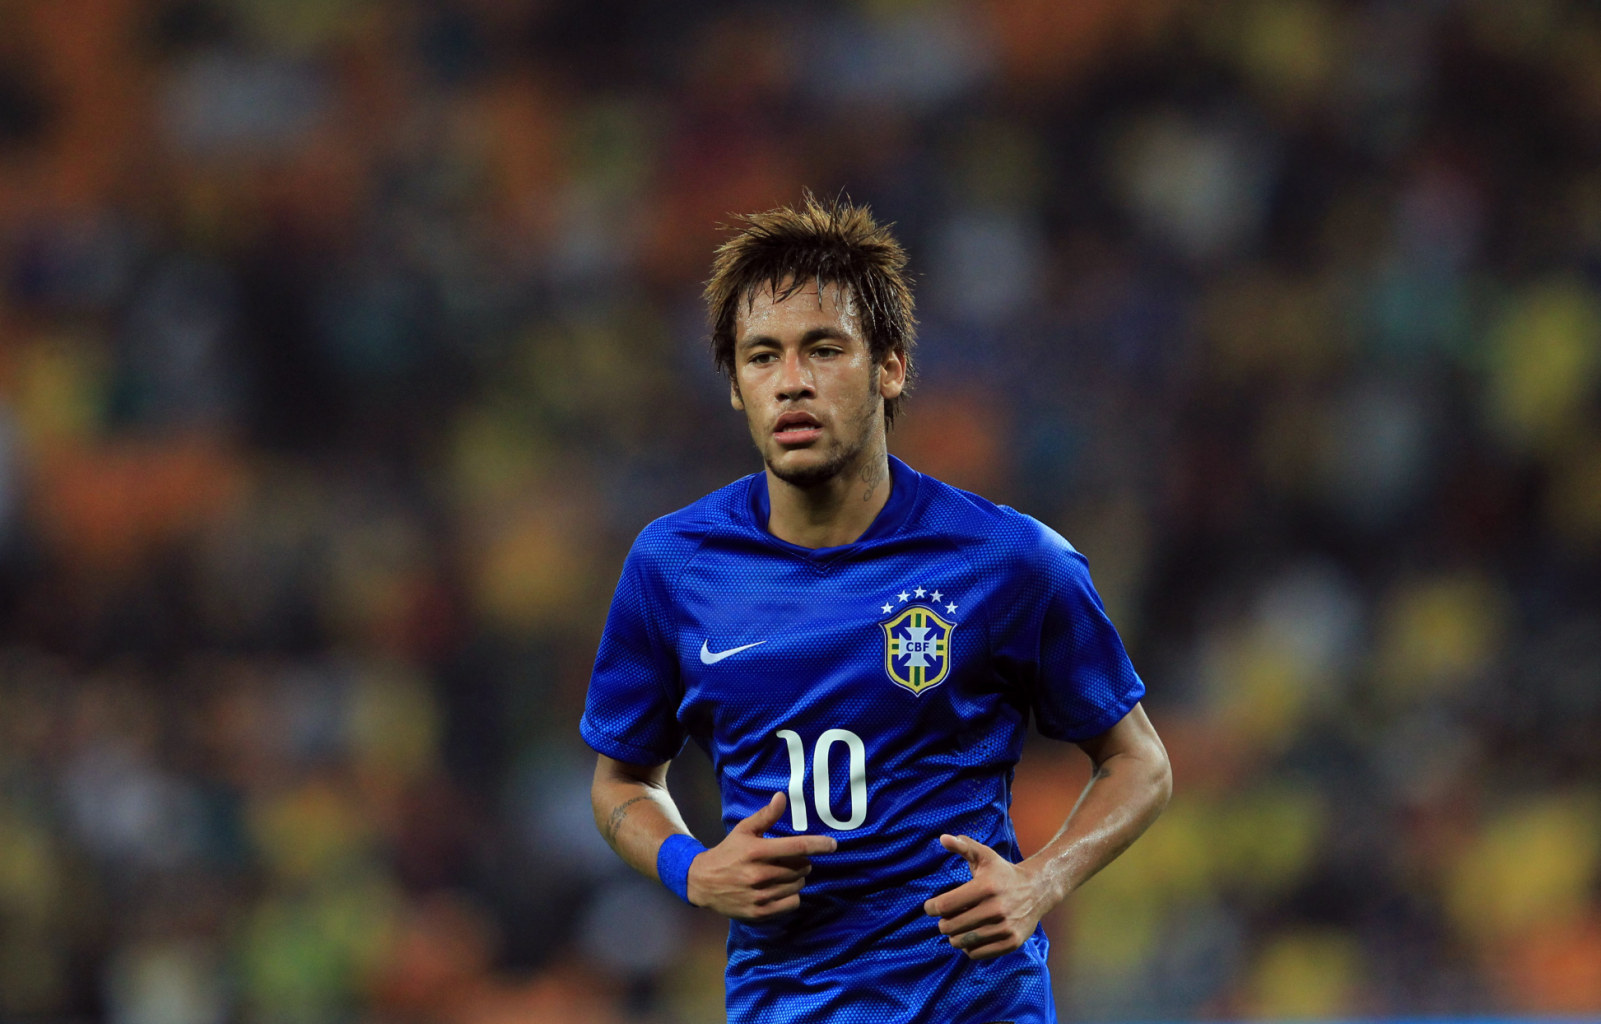 Neymar Jr Brazil 2014 World CupNeymar Jr Brazil 2014